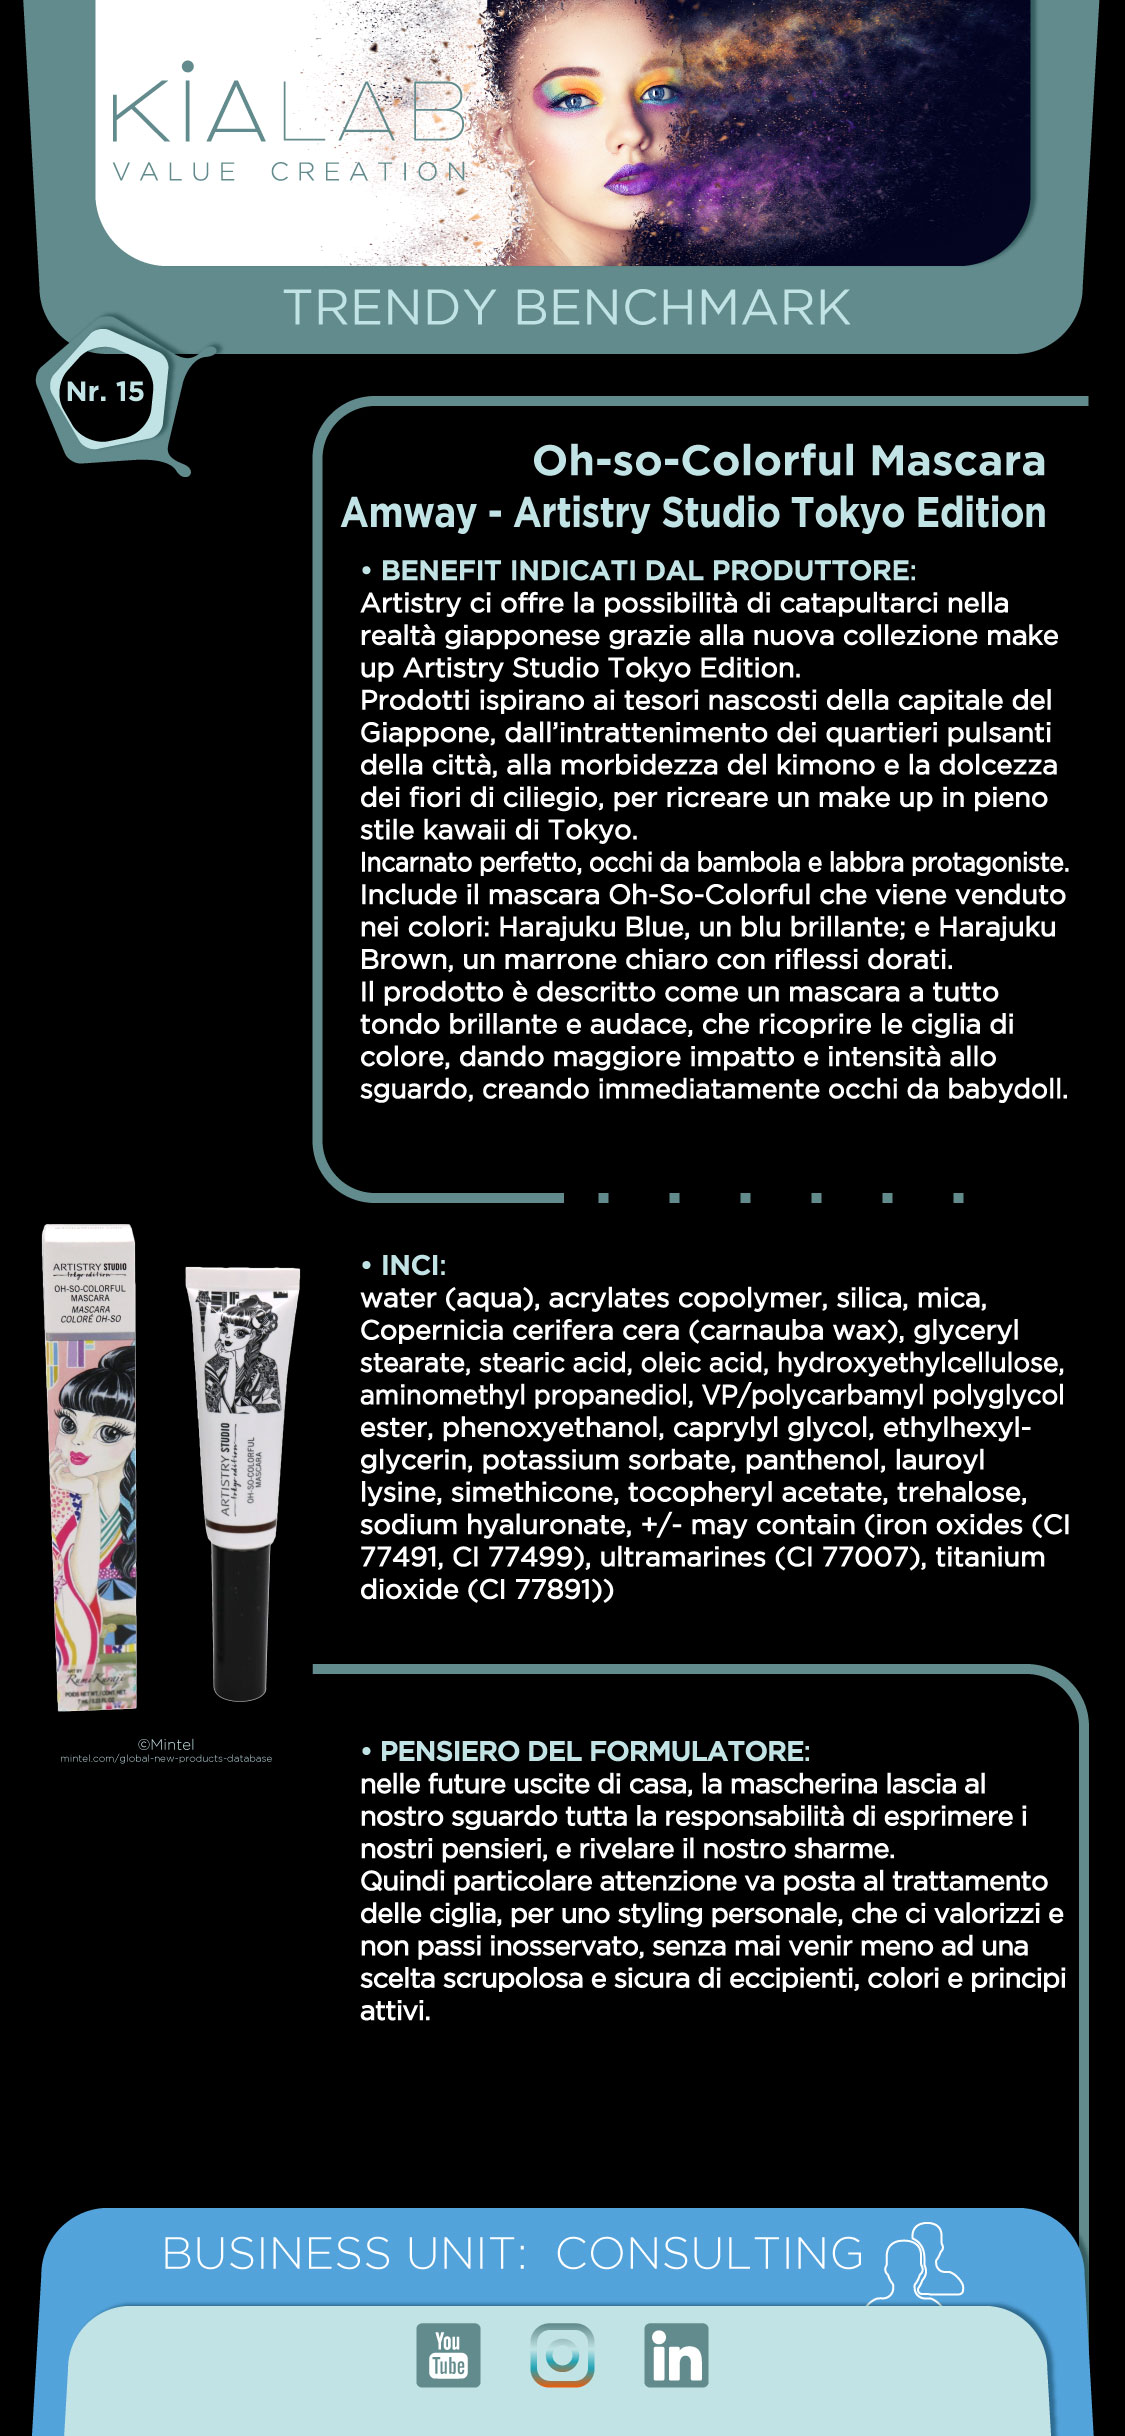 Trendy Benchmark Kialab Oh-So-Colorful Mascara Amway® Artistry Studio Tokio Edition